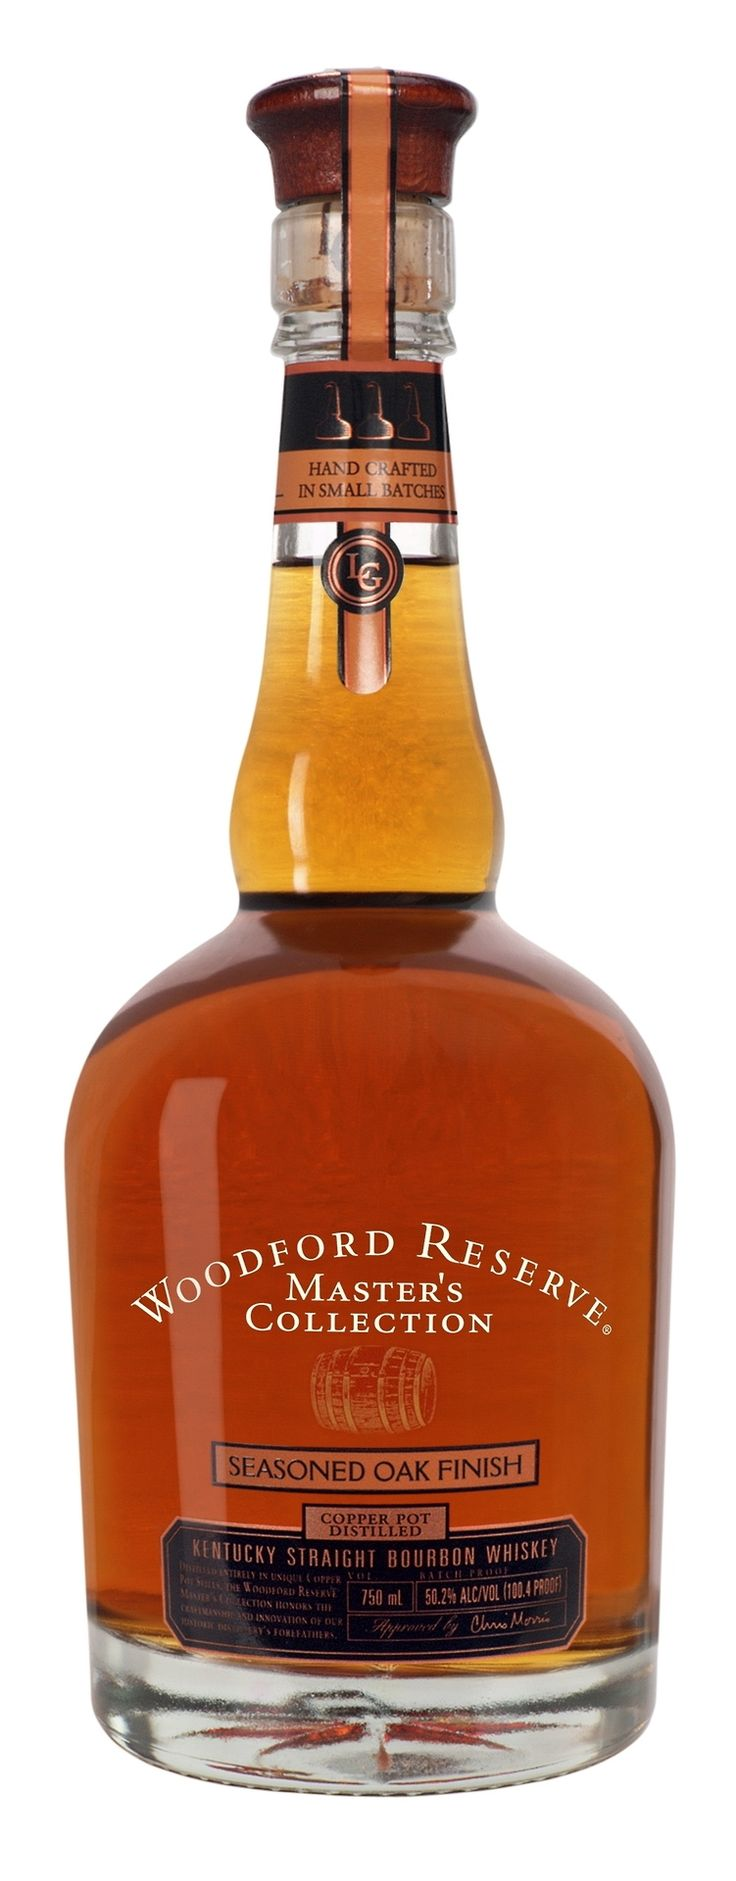 ☆ Labrot & Graham Woodford Reserve Master's Collection Maple Wood Finish Kentucky Straight Bourbon Whiskey ☆